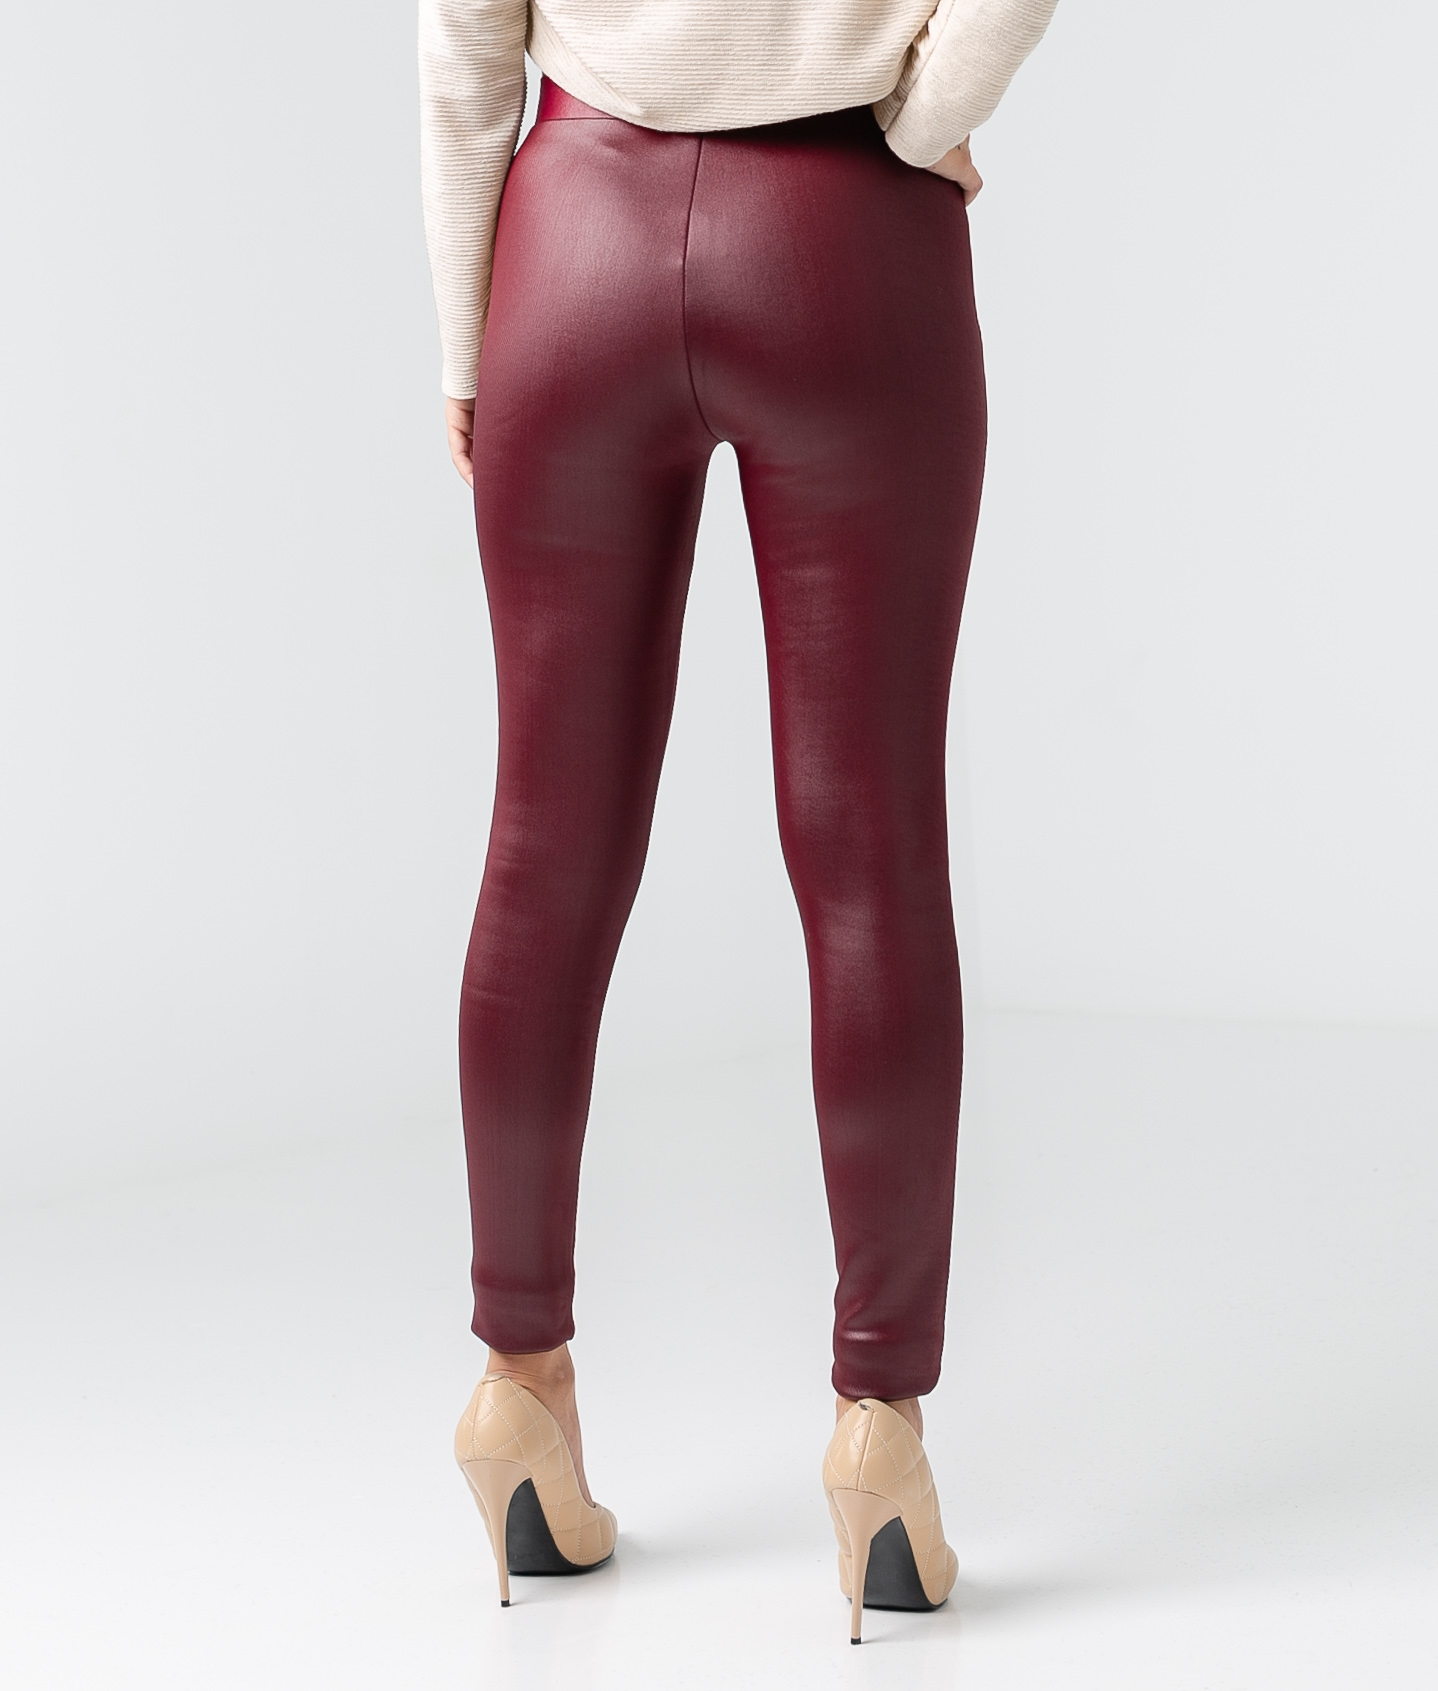 Leggins Nerja - Granate